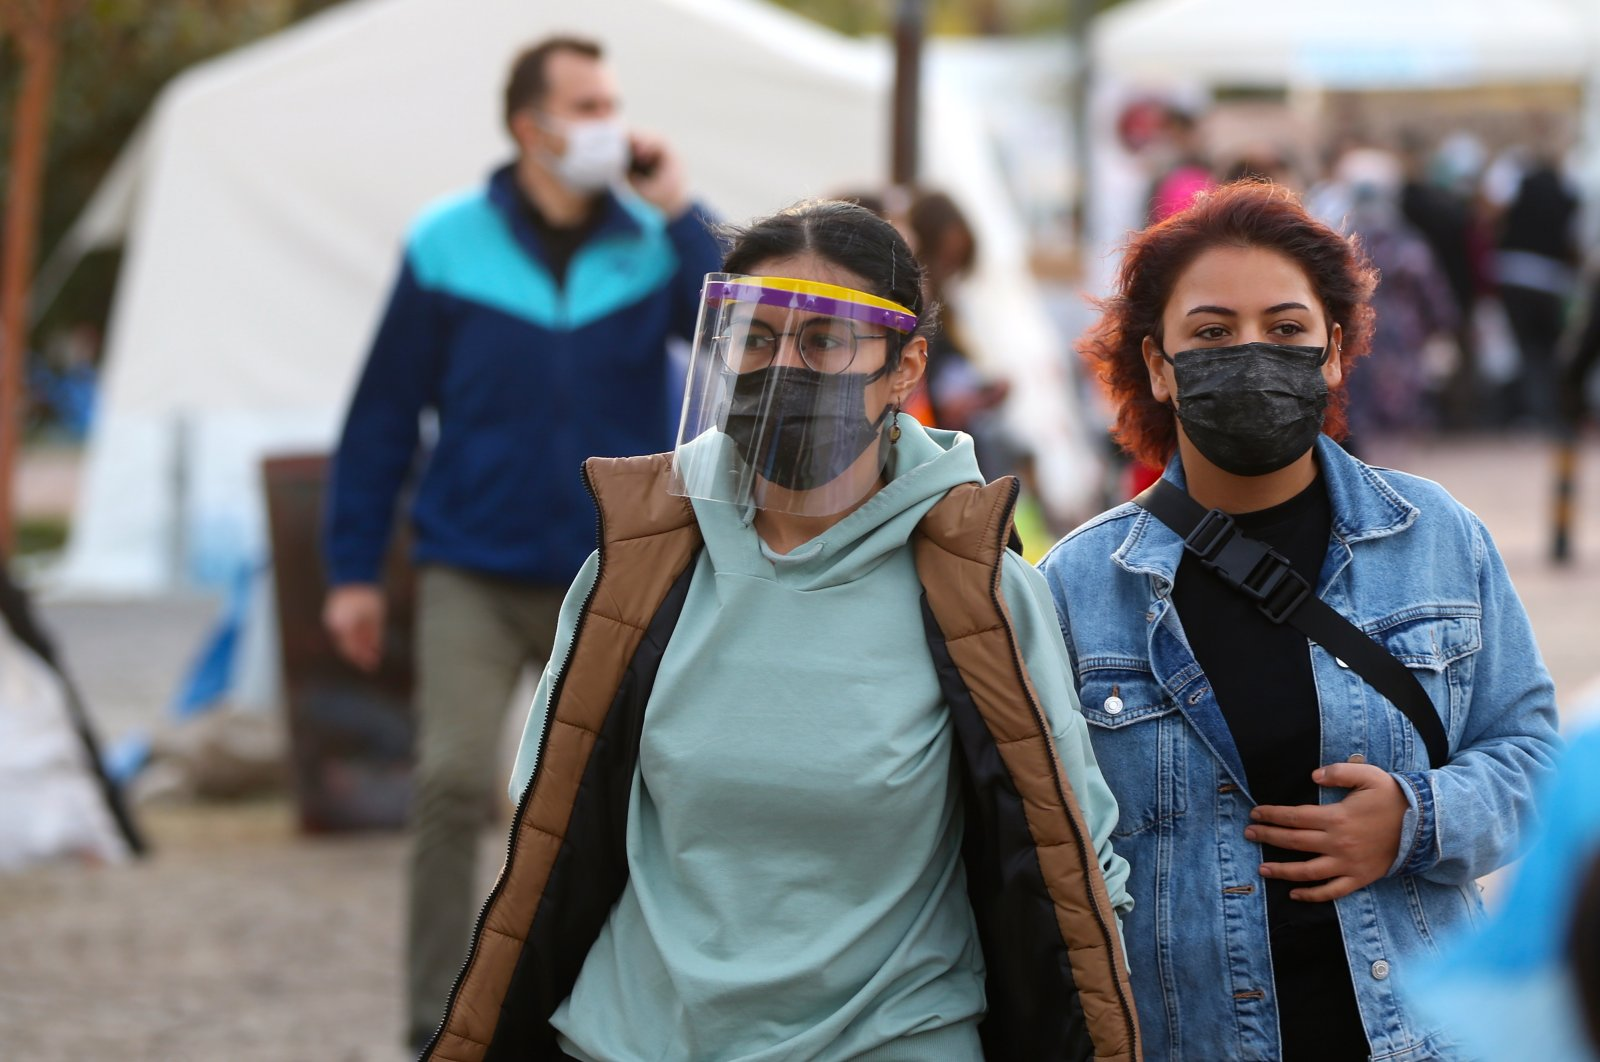 Two young women donning face masks and shields walk at a tent city in the western city of Izmir, which was hit by an earthquake on Oct. 30, 2020 killing 114 people and injured hundreds more, leaving thousands homeless or in search of more secure buildings, on Nov. 7, 2020. (AA Photo)